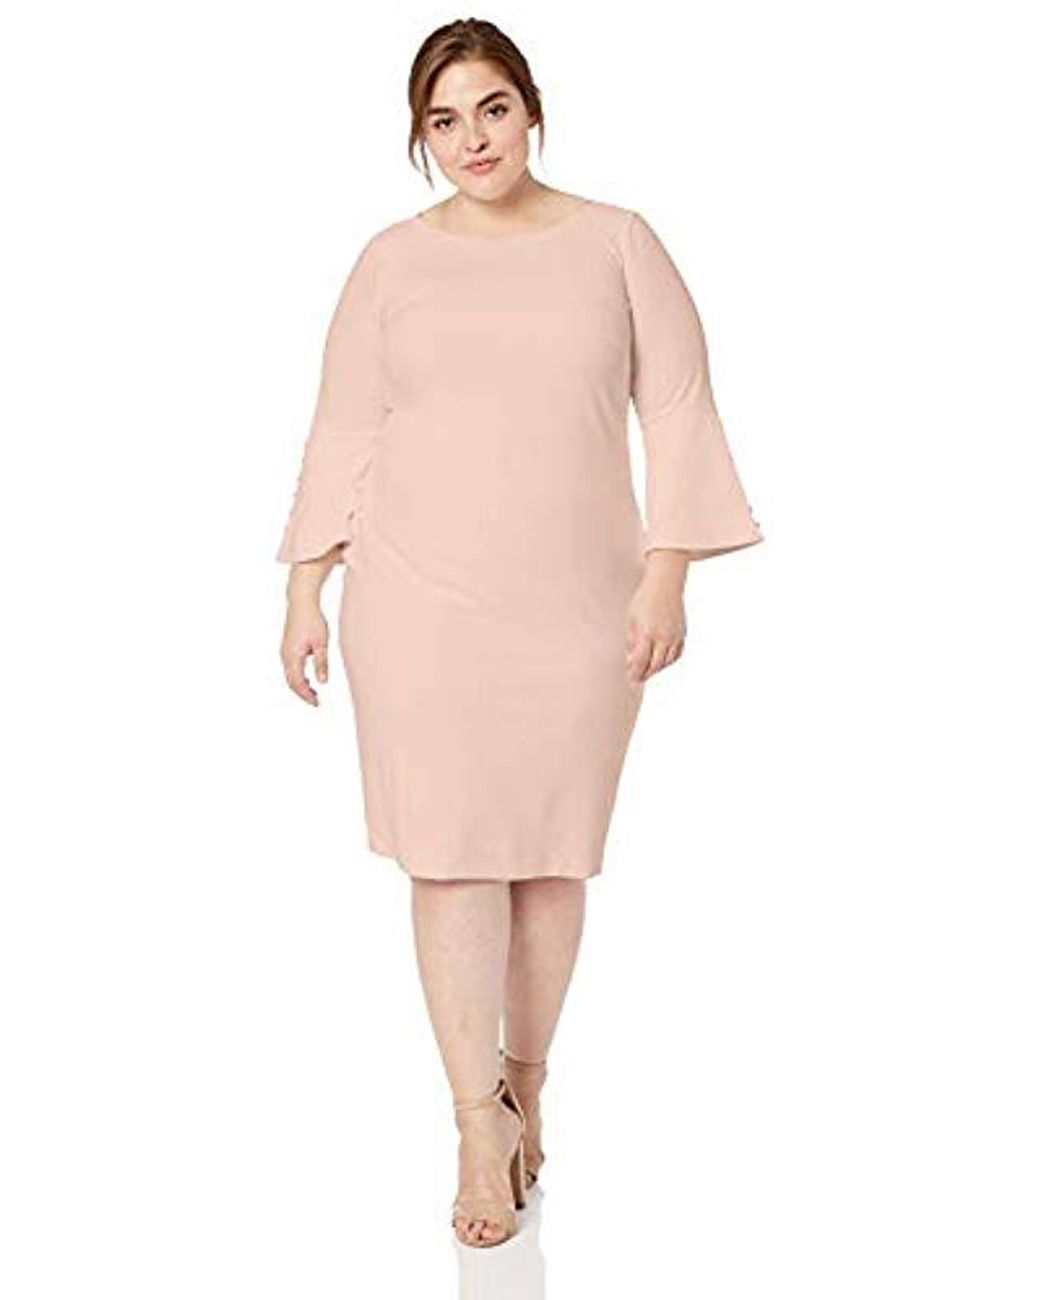 258d99f1 Calvin Klein Plus Size Solid Sheath With Detailed Bell Sleeve Dress in Pink  - Lyst